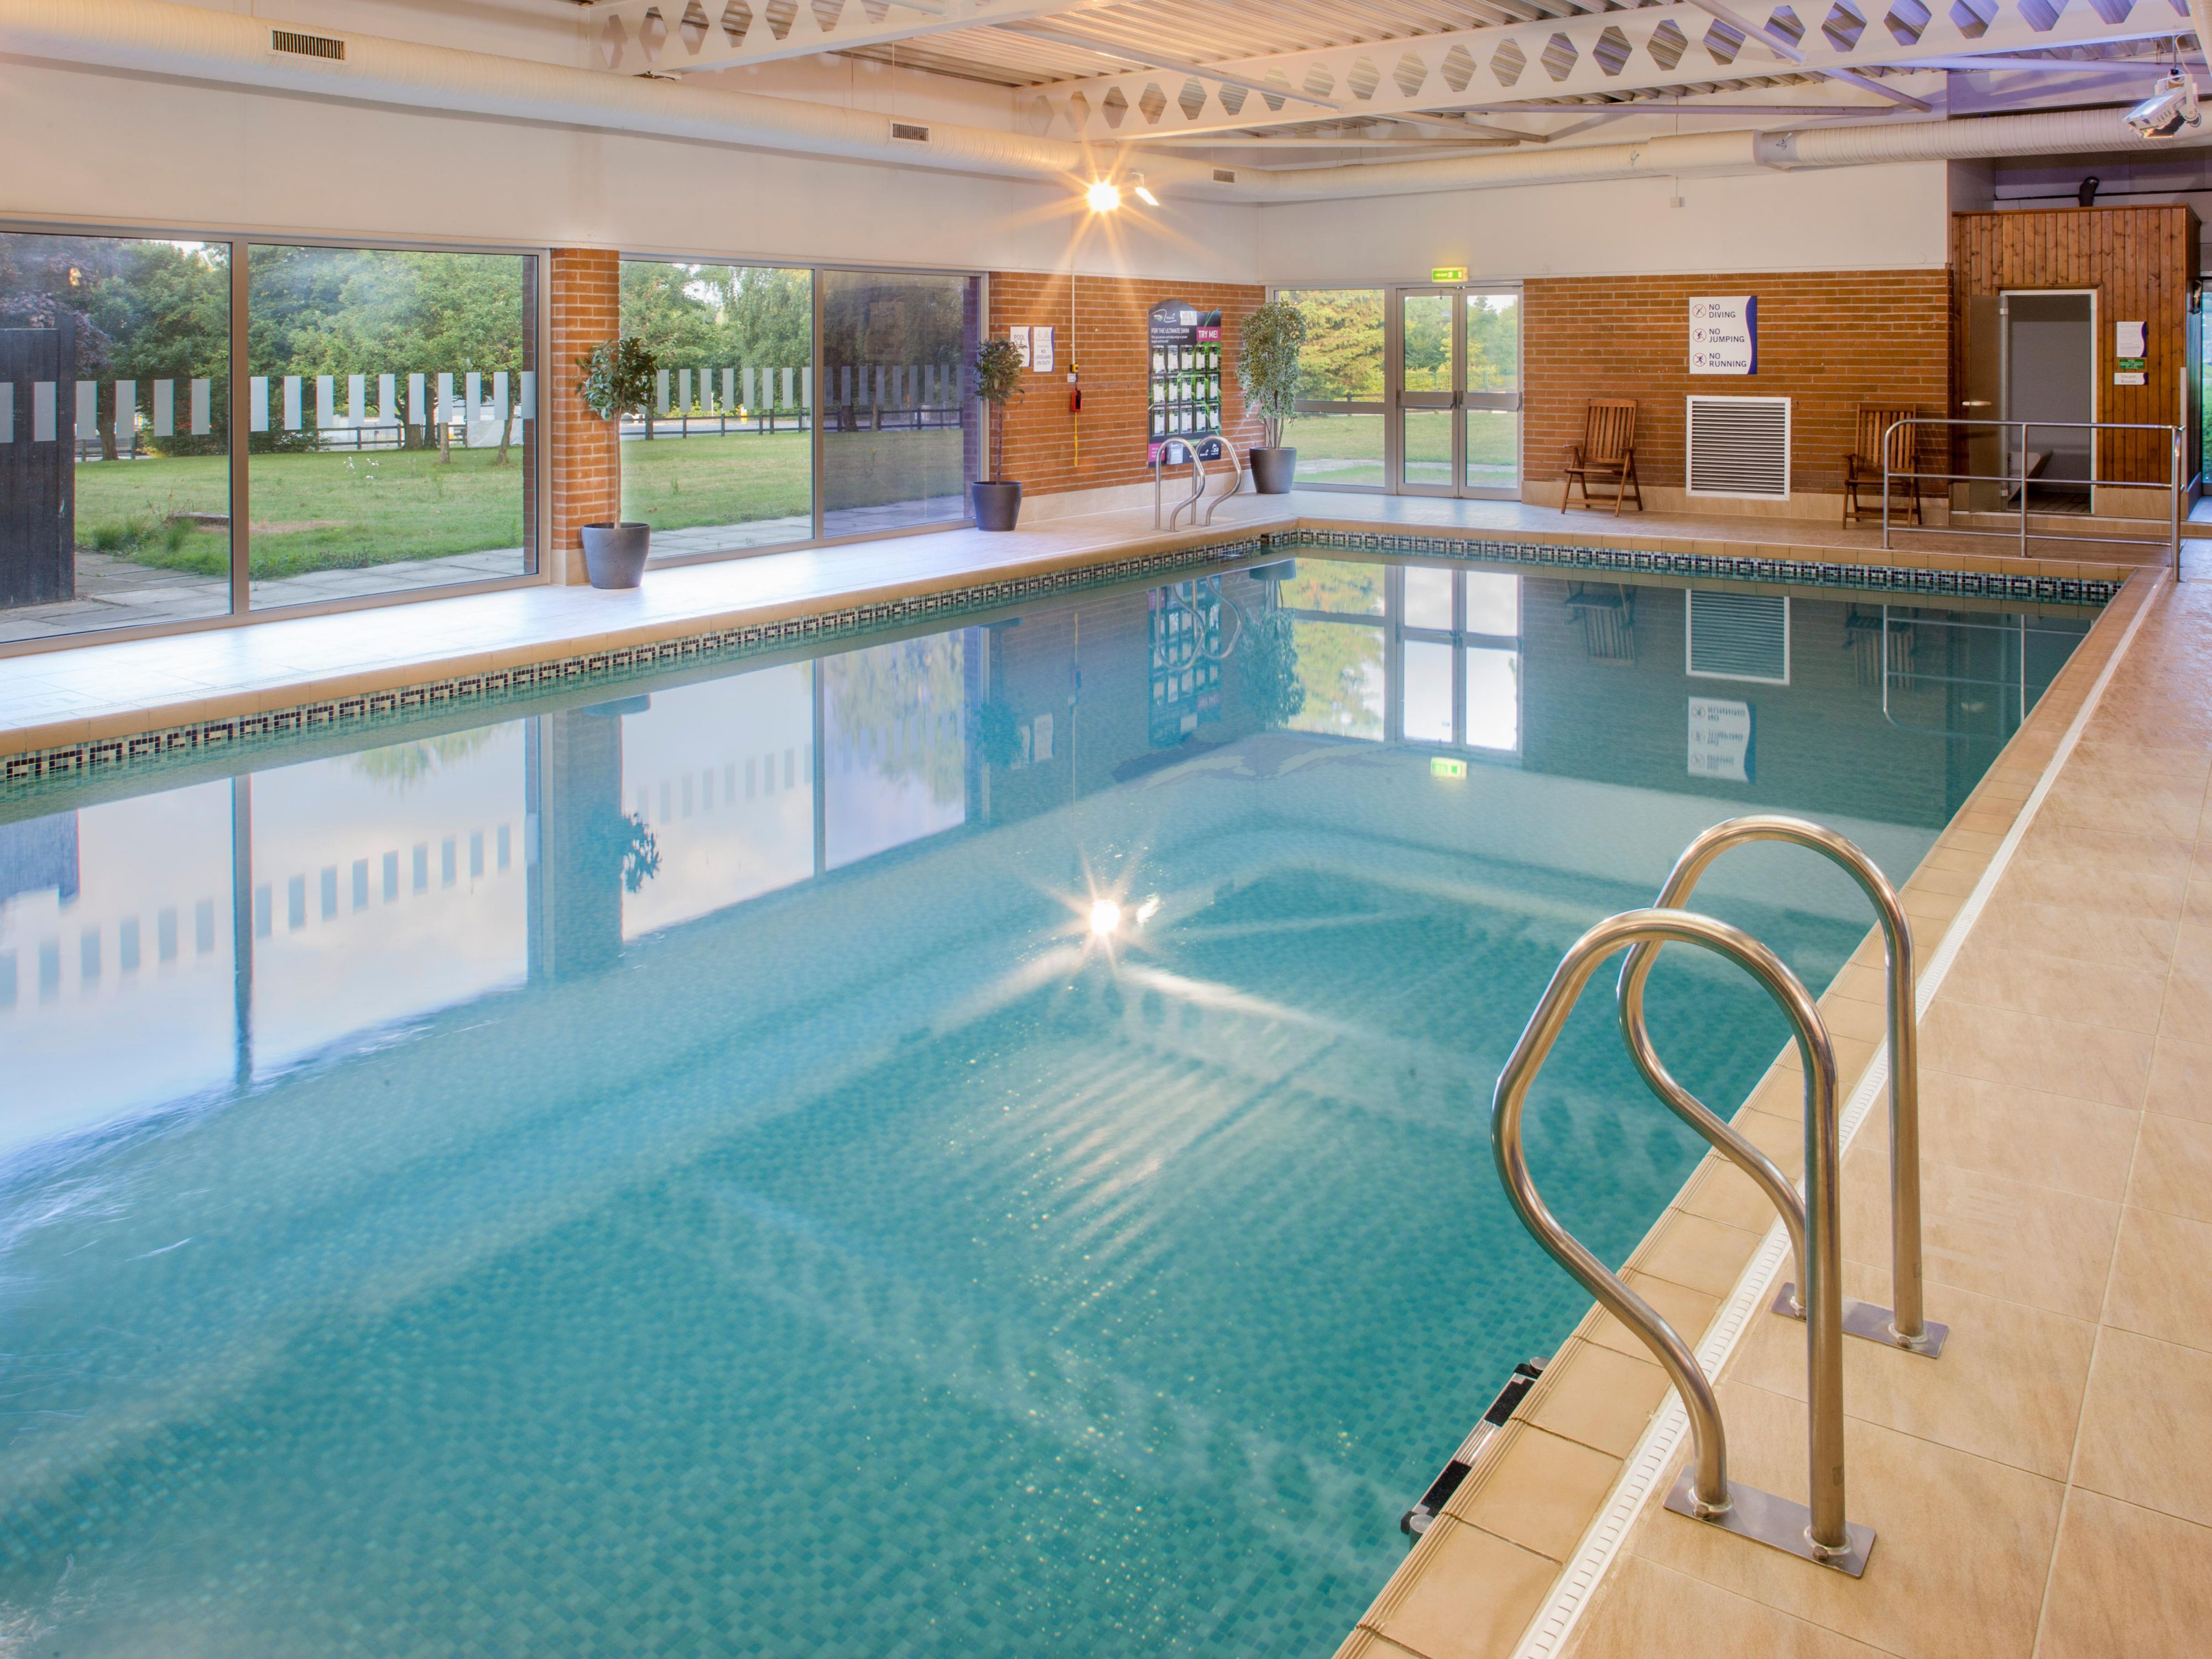 Enjoy a dip in our heated pool